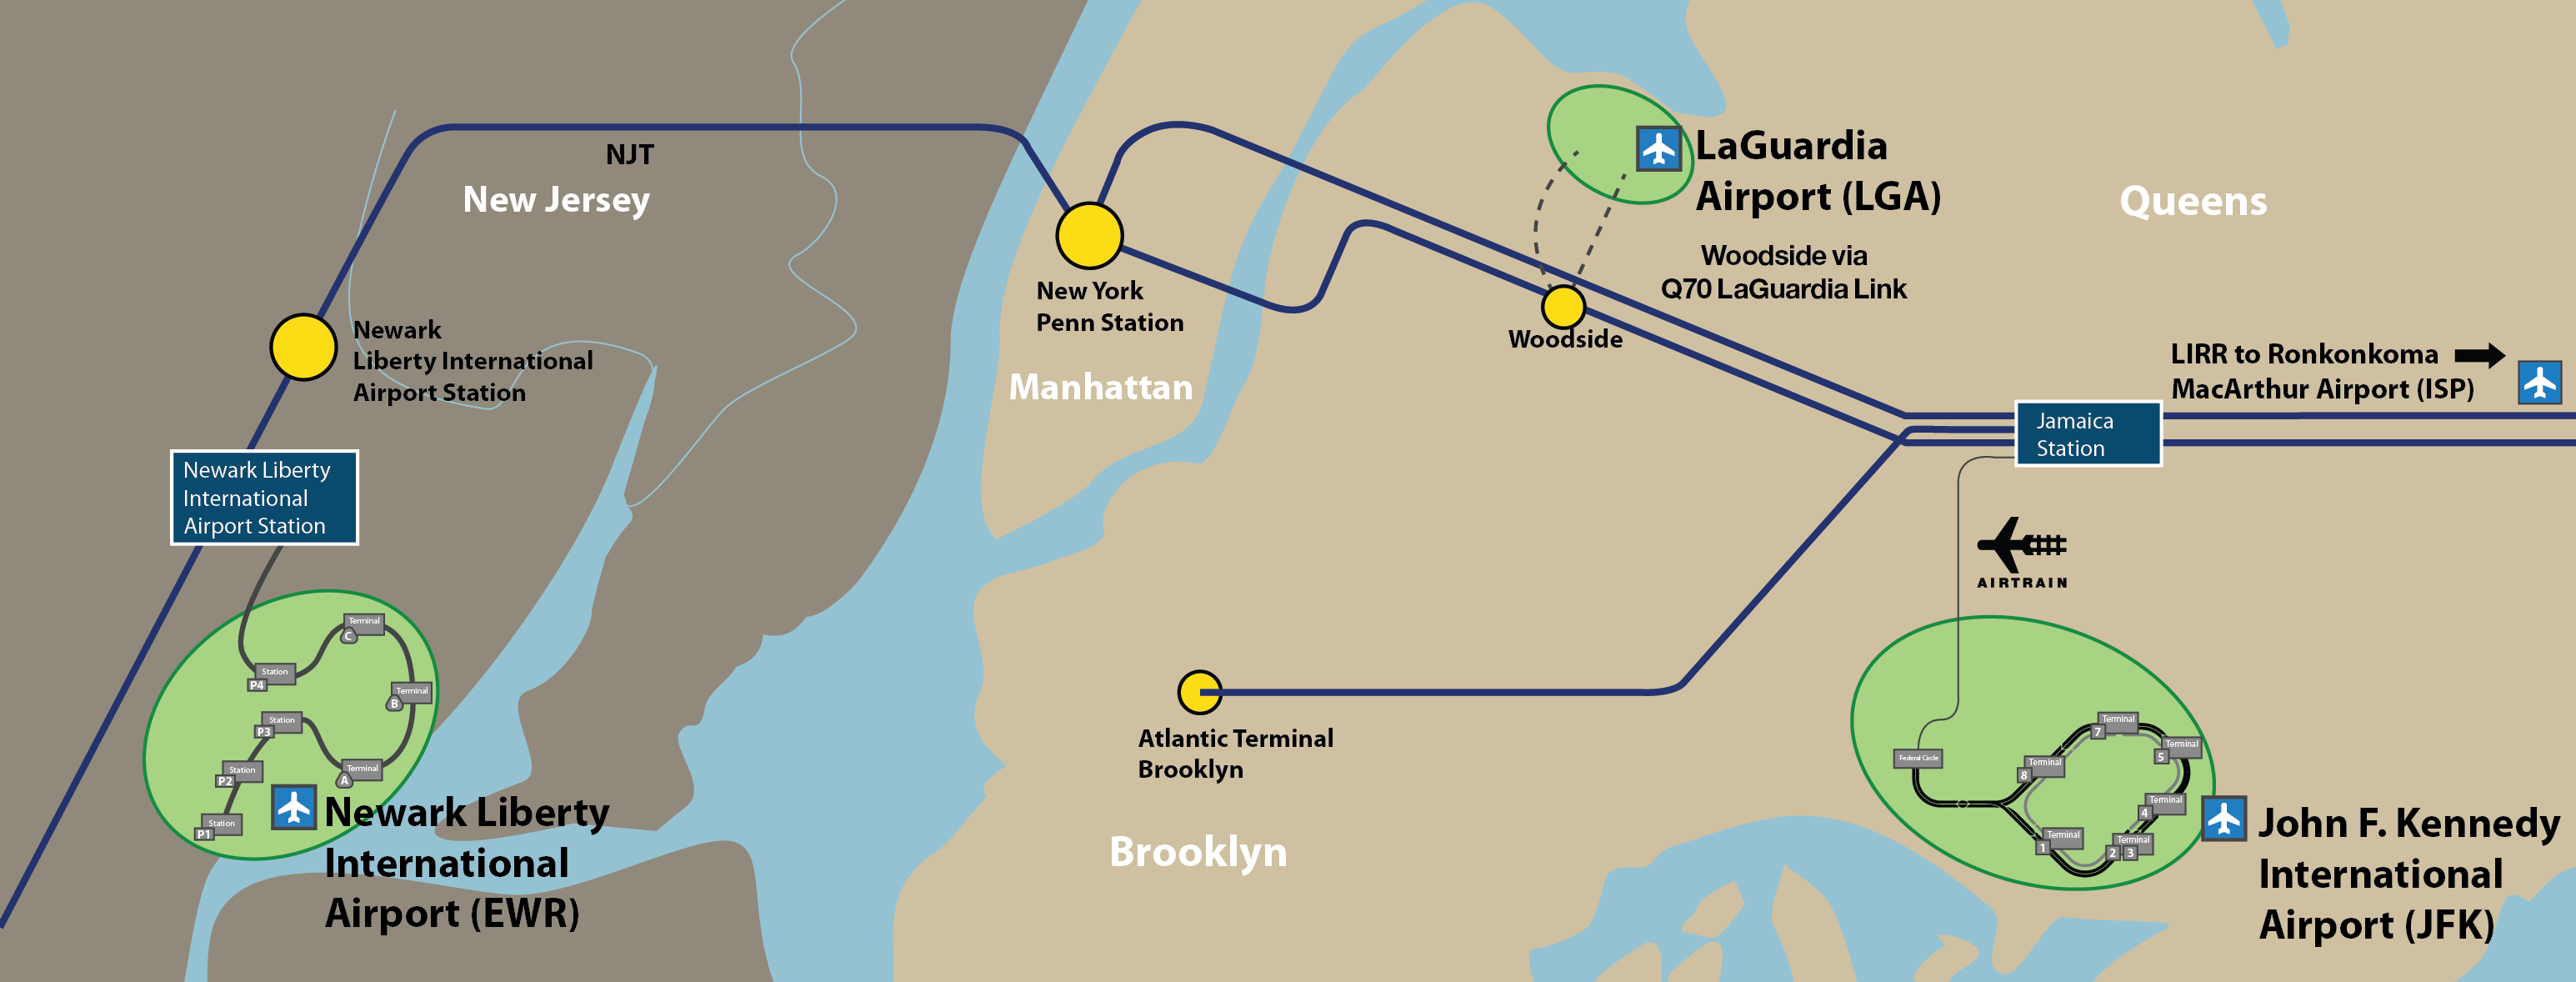 Map Of New York Showing Jfk Airport.Take The Train To The Plane At Jfk Lga Isp Ewr